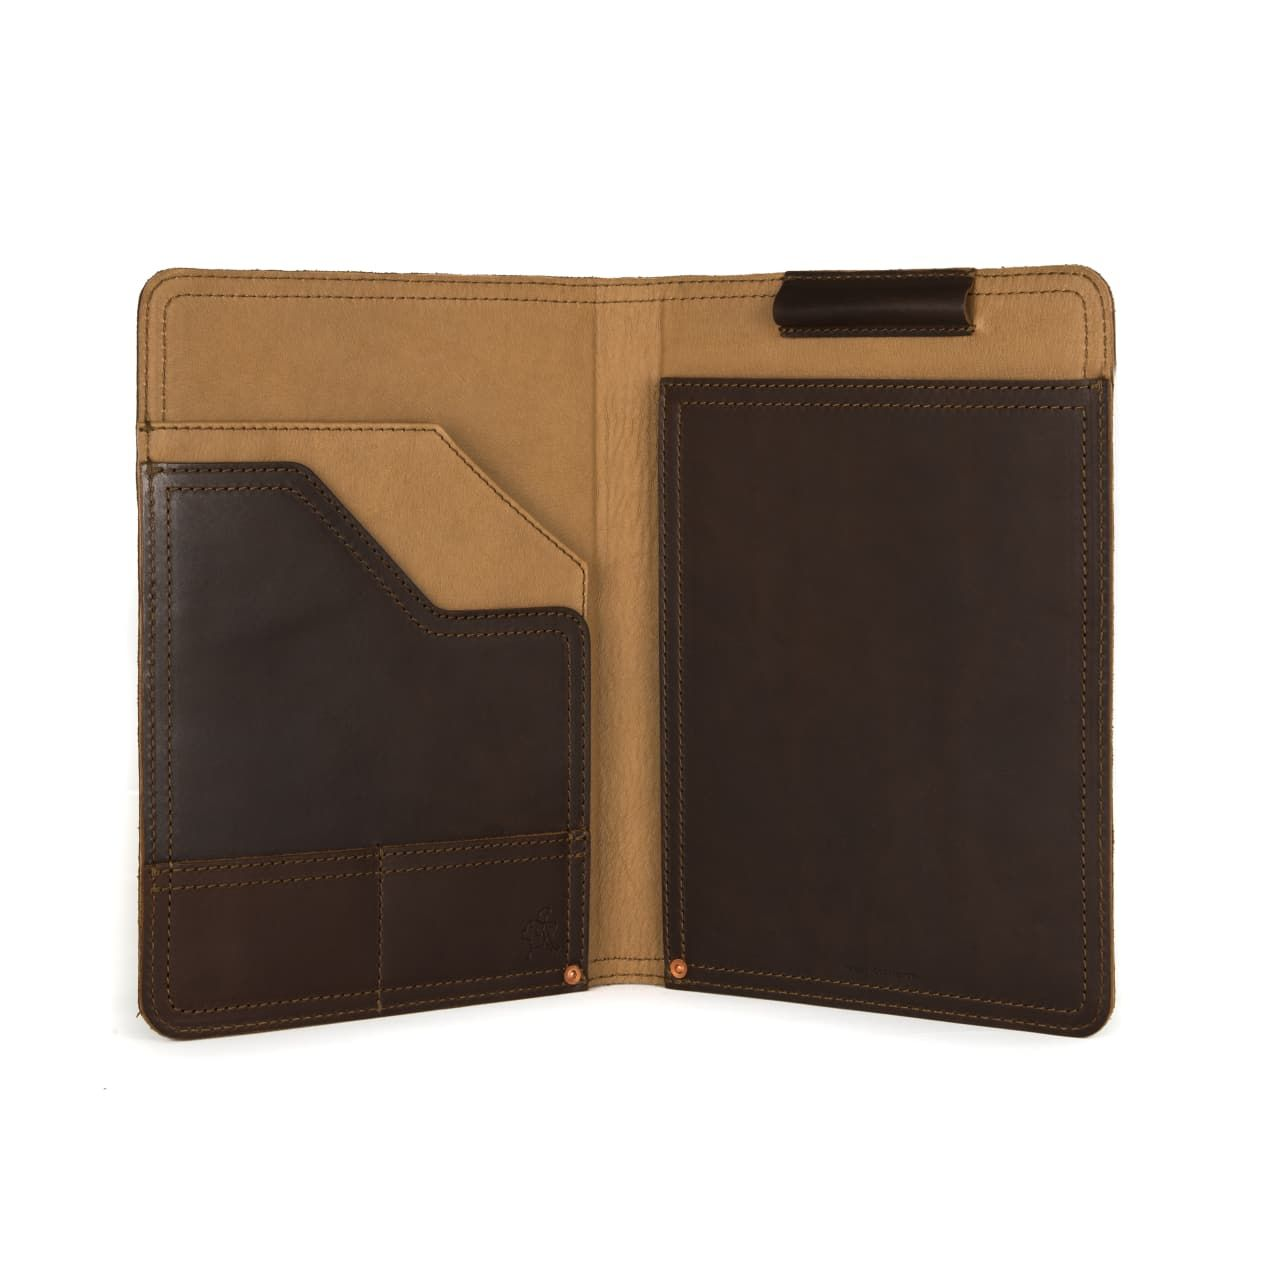 leather notepad cover medium in dark coffee brown leather